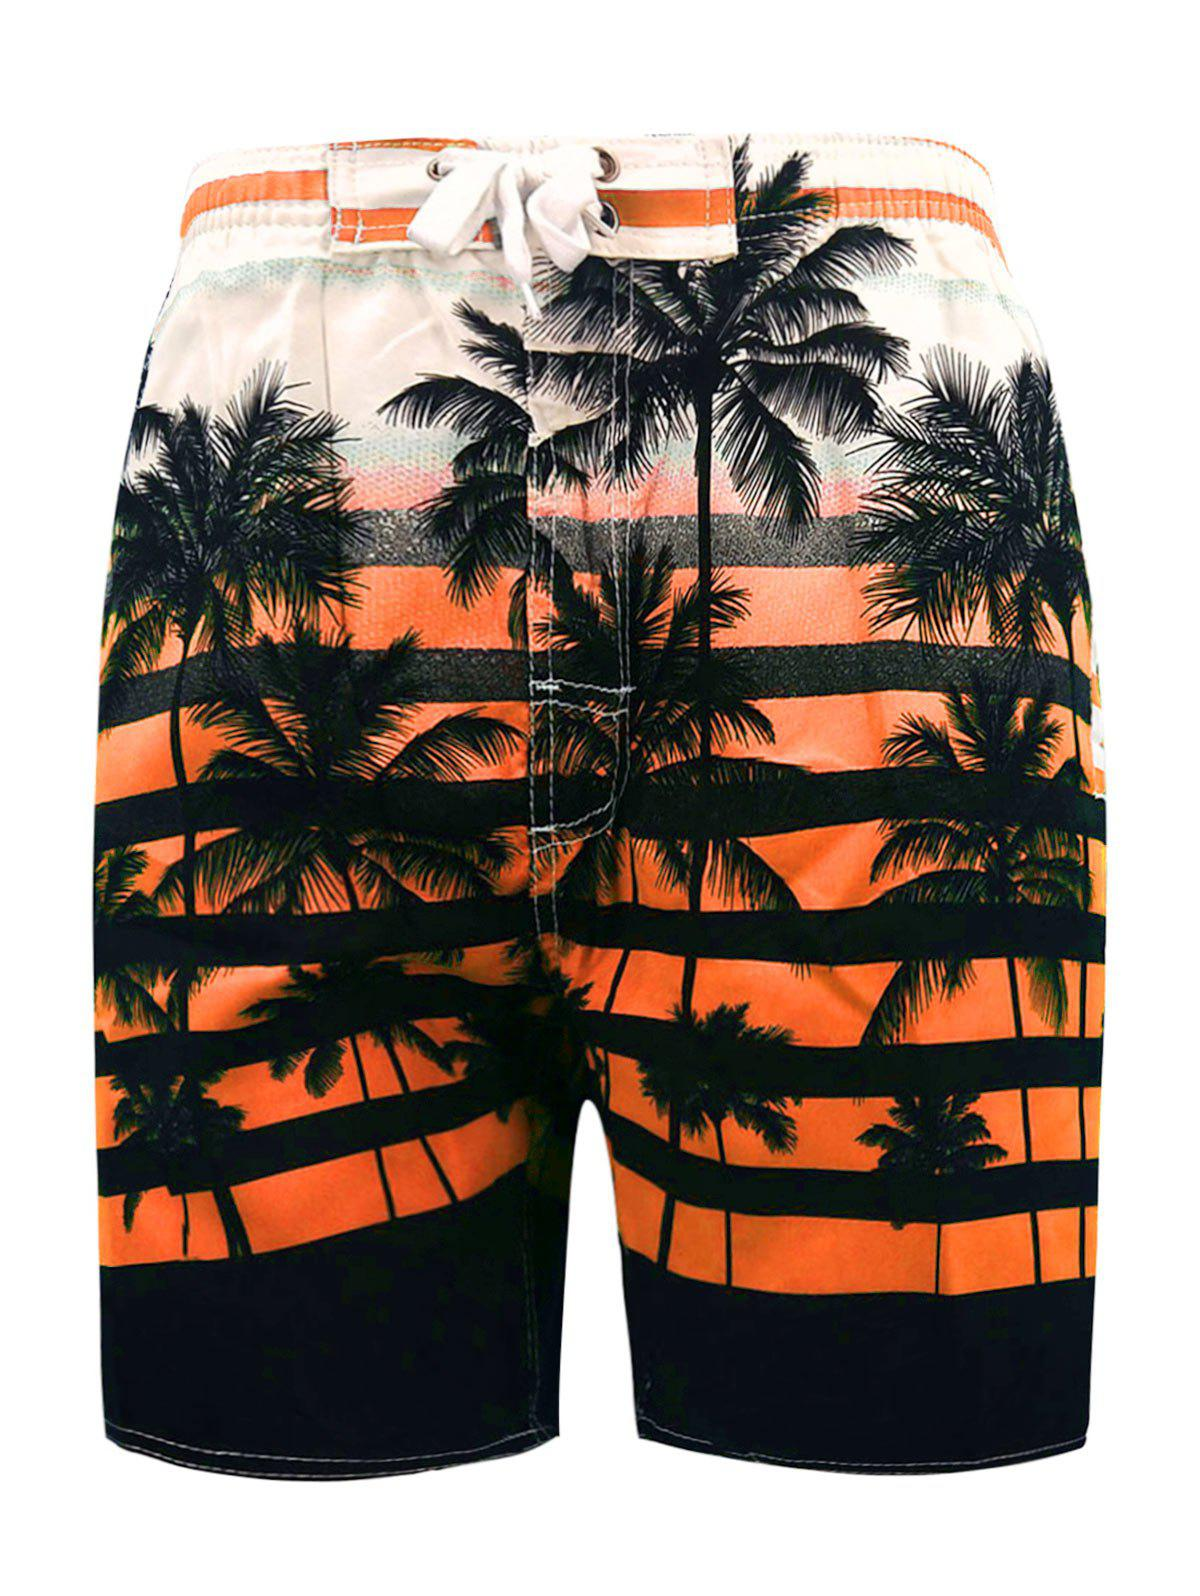 Chic Lace Up Coconut Palm Sunset Print Shorts